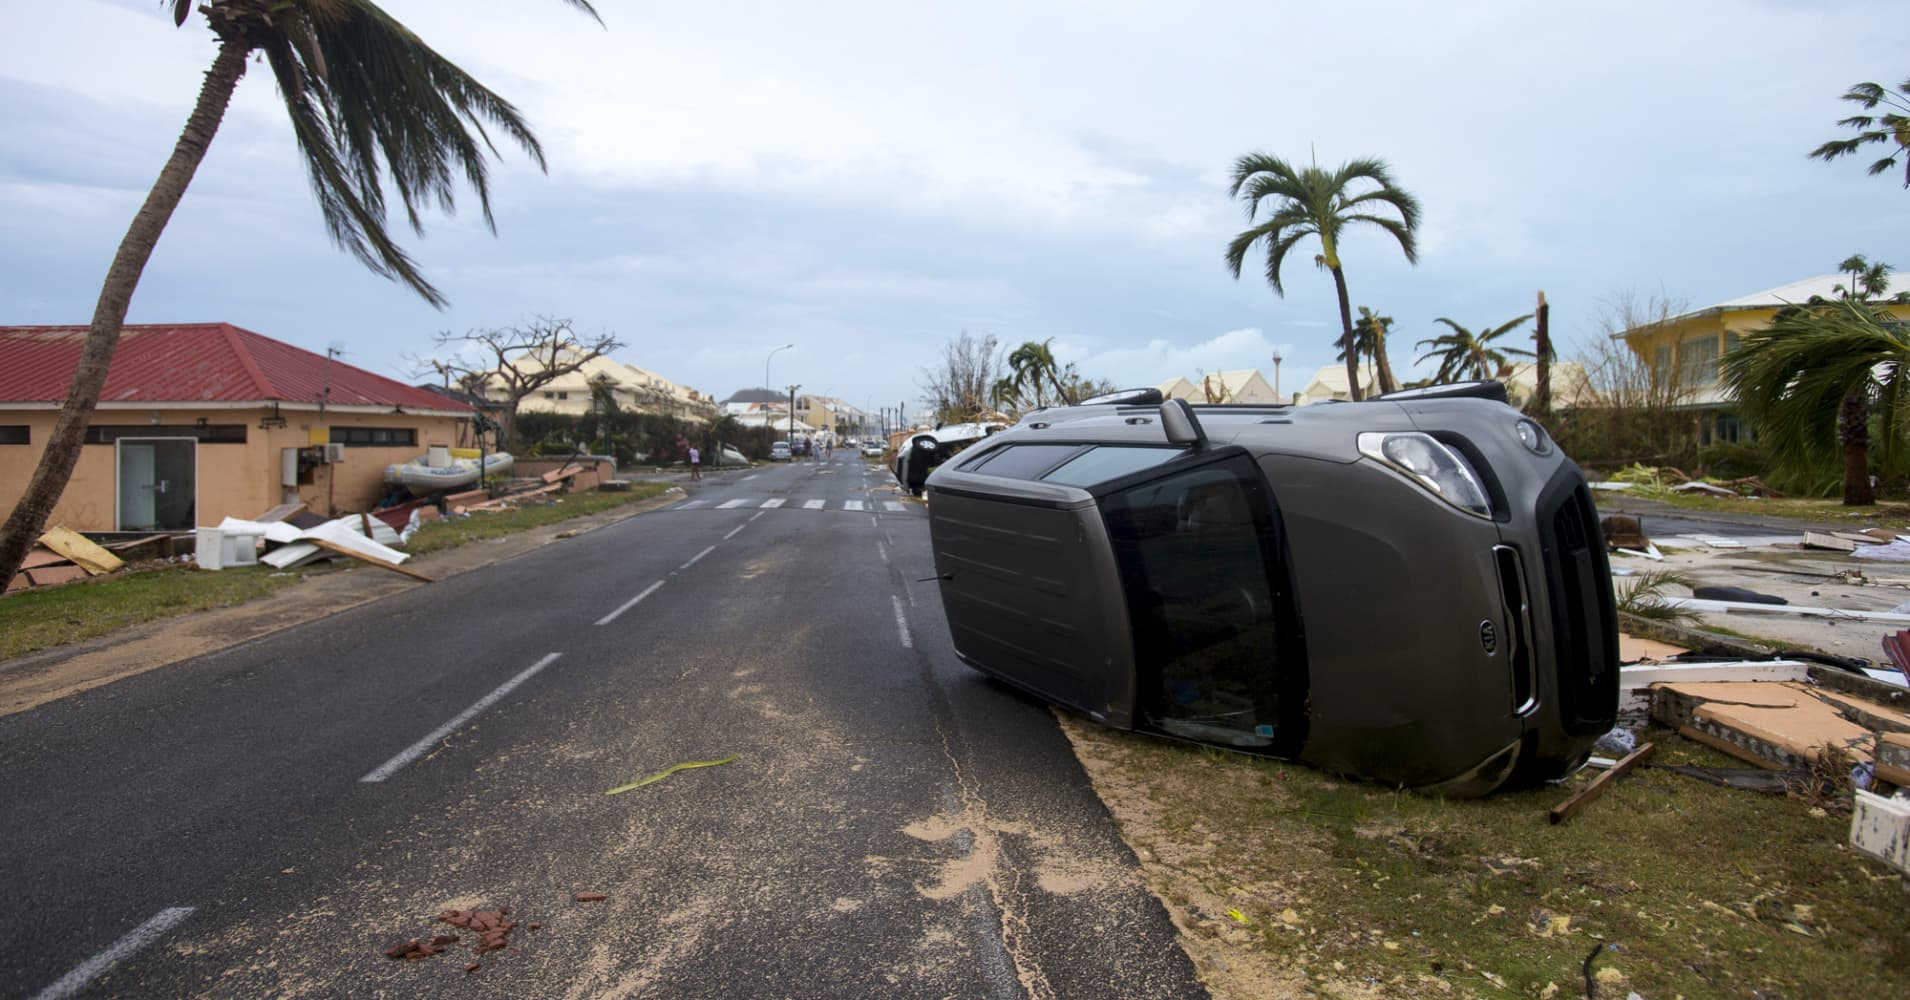 A car turned onto its side in Marigot, near the Bay of Nettle, on the French Collectivity of Saint Martin, after the passage of Hurricane Irma.